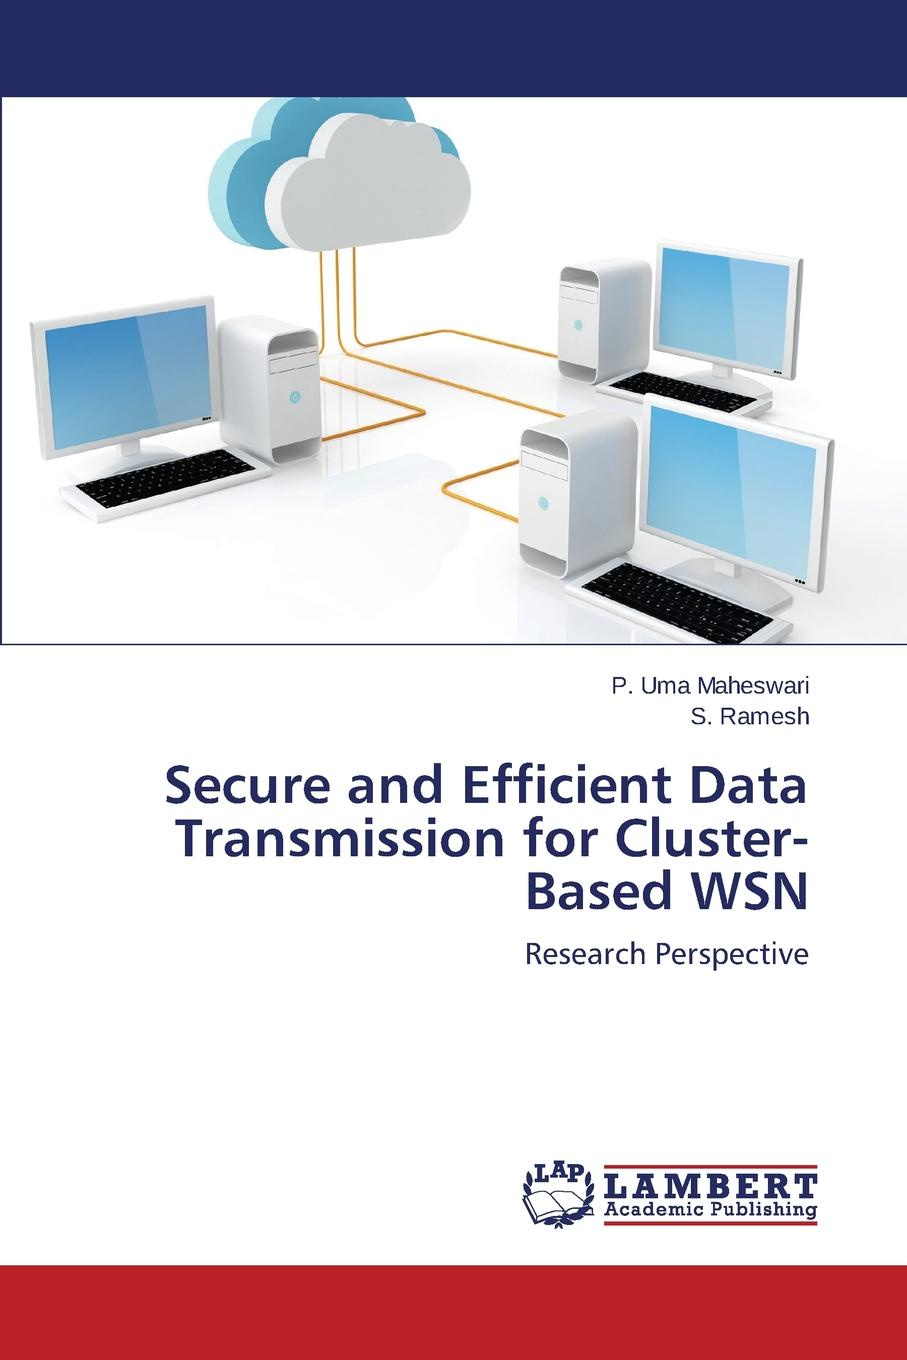 Maheswari P. Uma, Ramesh S. Secure and Efficient Data Transmission for Cluster-Based WSN divya rajasekar cluster based secure key establishment protocol for wsn